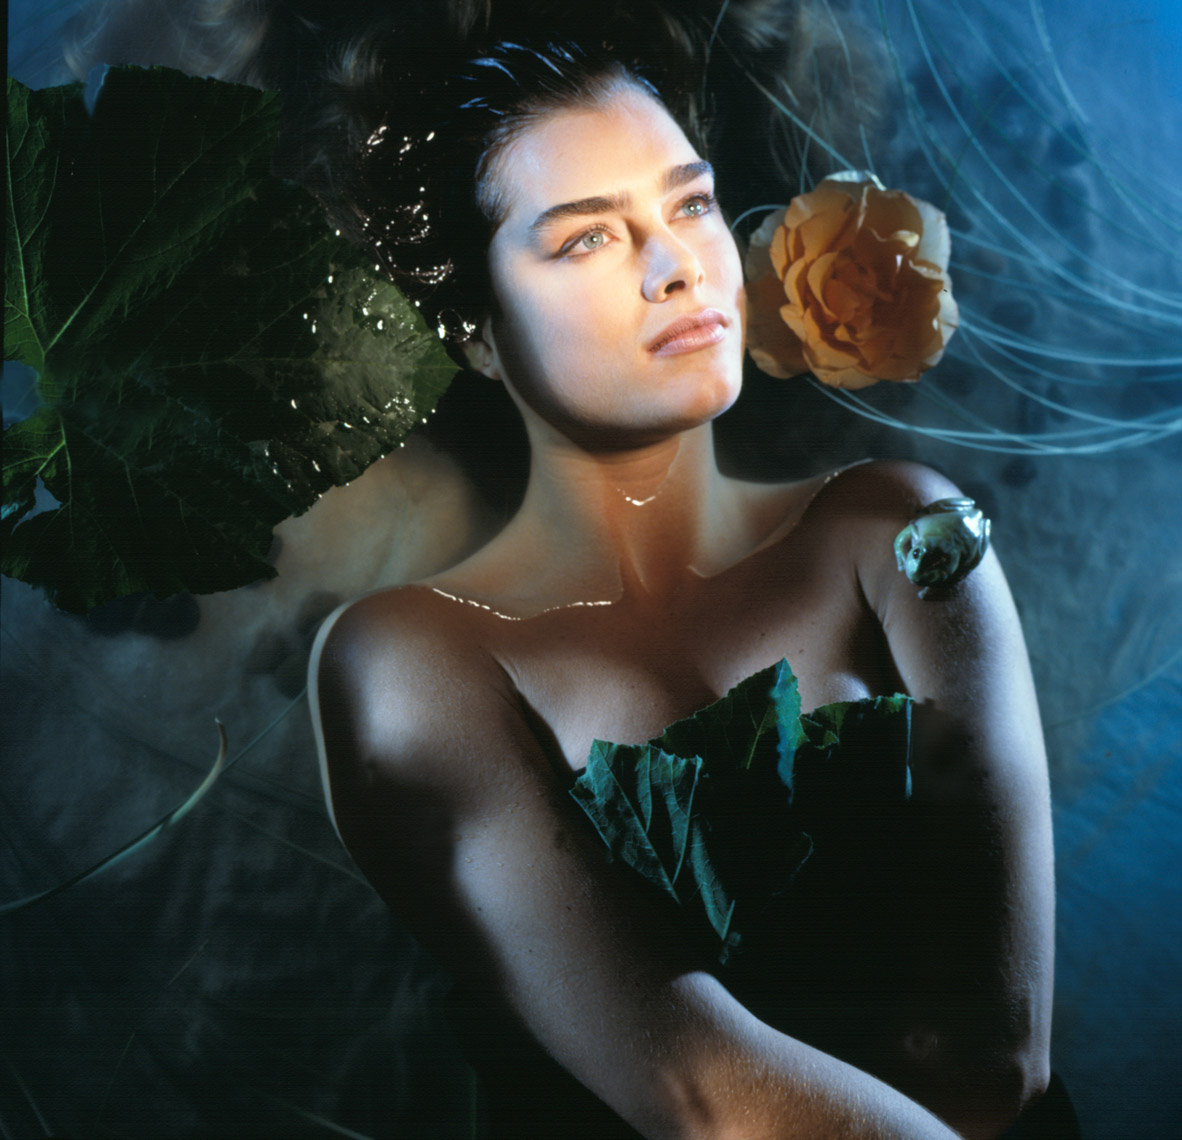 Brooke-Shields_Water-O_edit.jpg